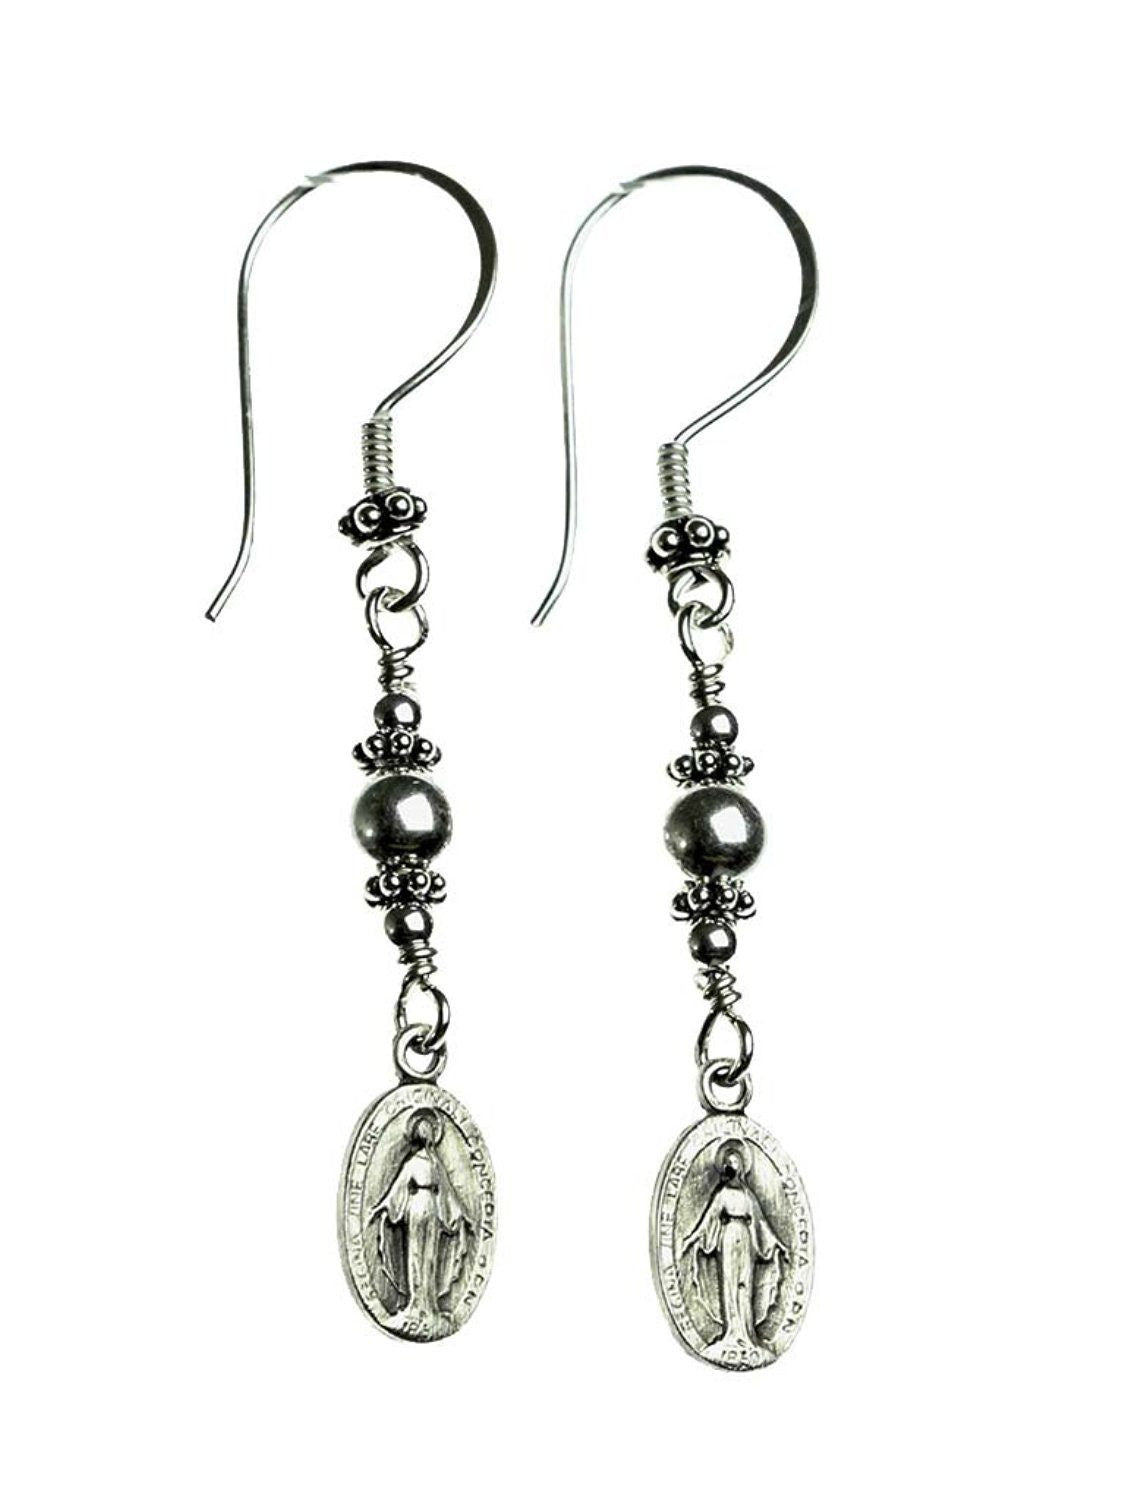 Handmade Sterling Silver Miraculous Medal Earrings